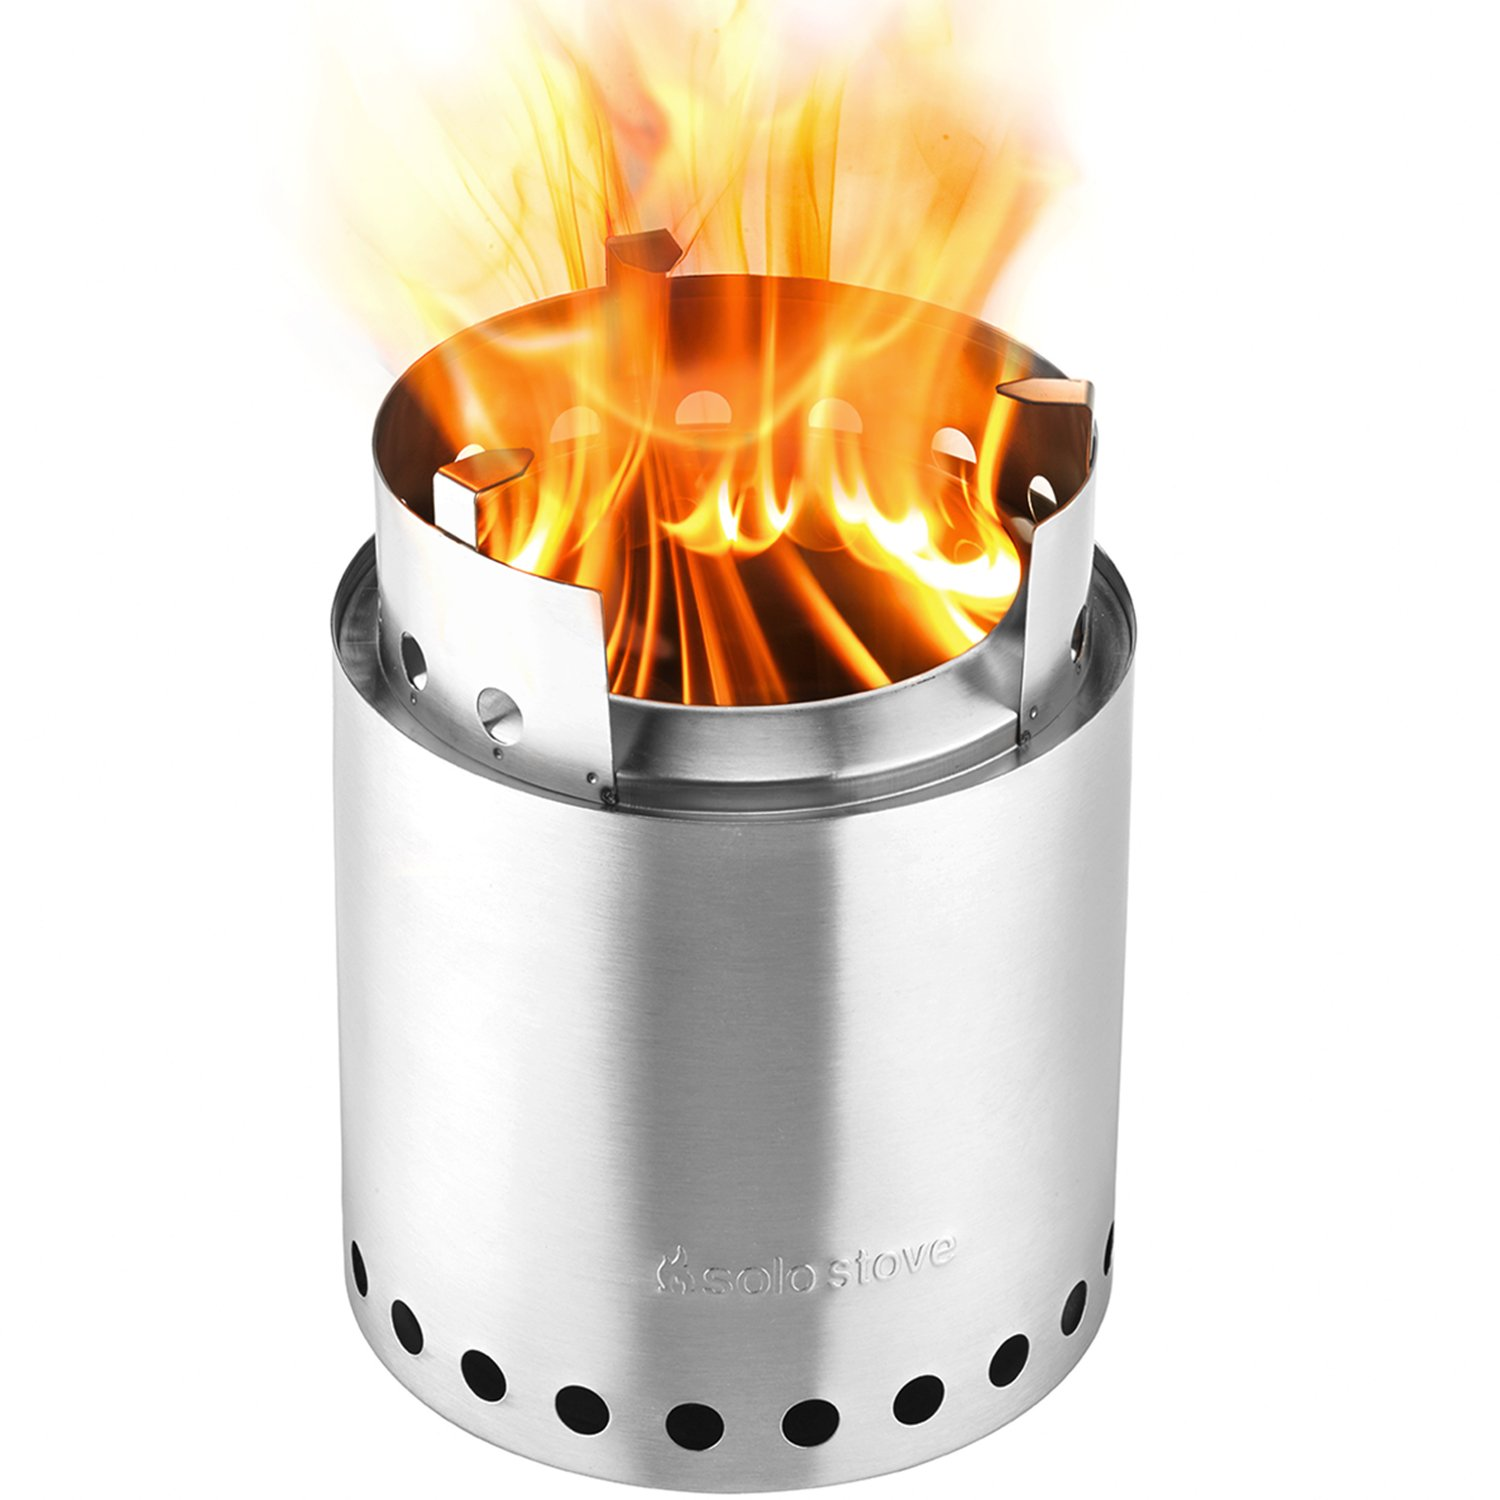 Solo Stove Campfire - 4+ Person Compact Wood Burning Camp Stove for Backpacking, Camping, Survival. Burns Twigs - NO Batteries or Liquid Fuel Gas Canister Required. by Solo Stove (Image #2)